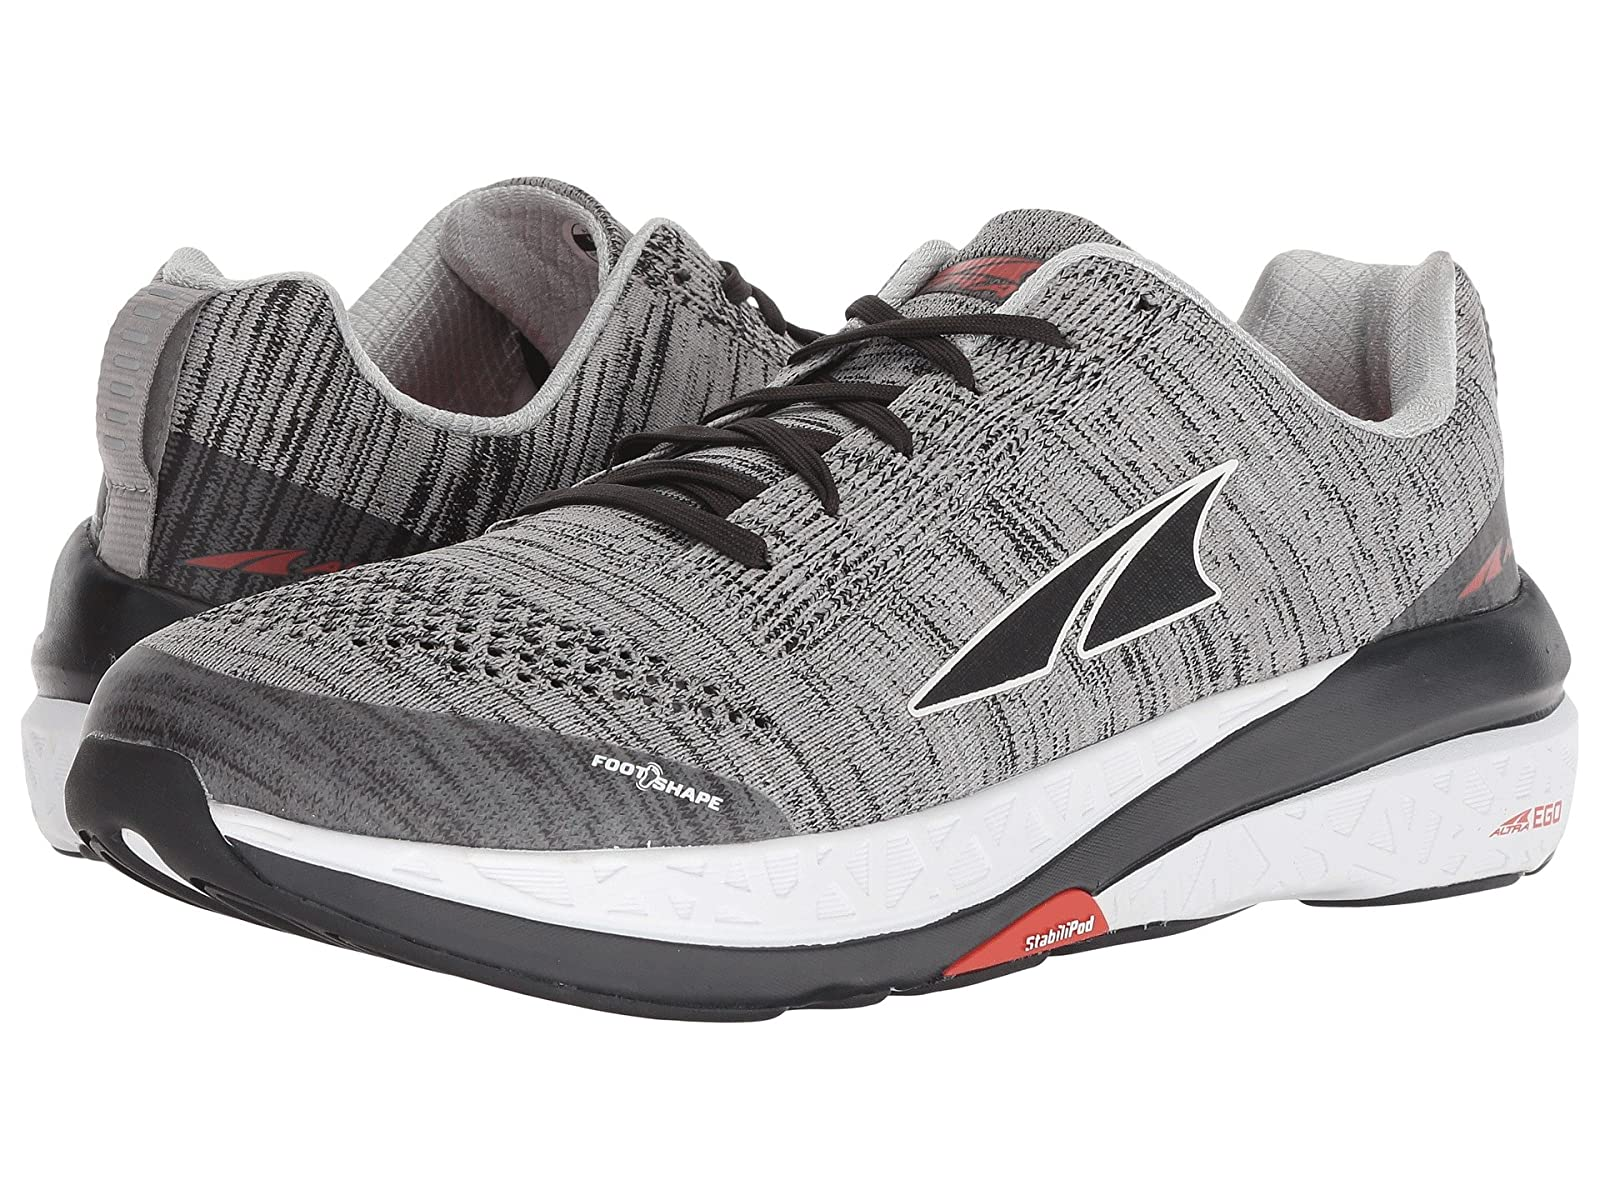 Altra Footwear Paradigm 4Atmospheric grades have affordable shoes